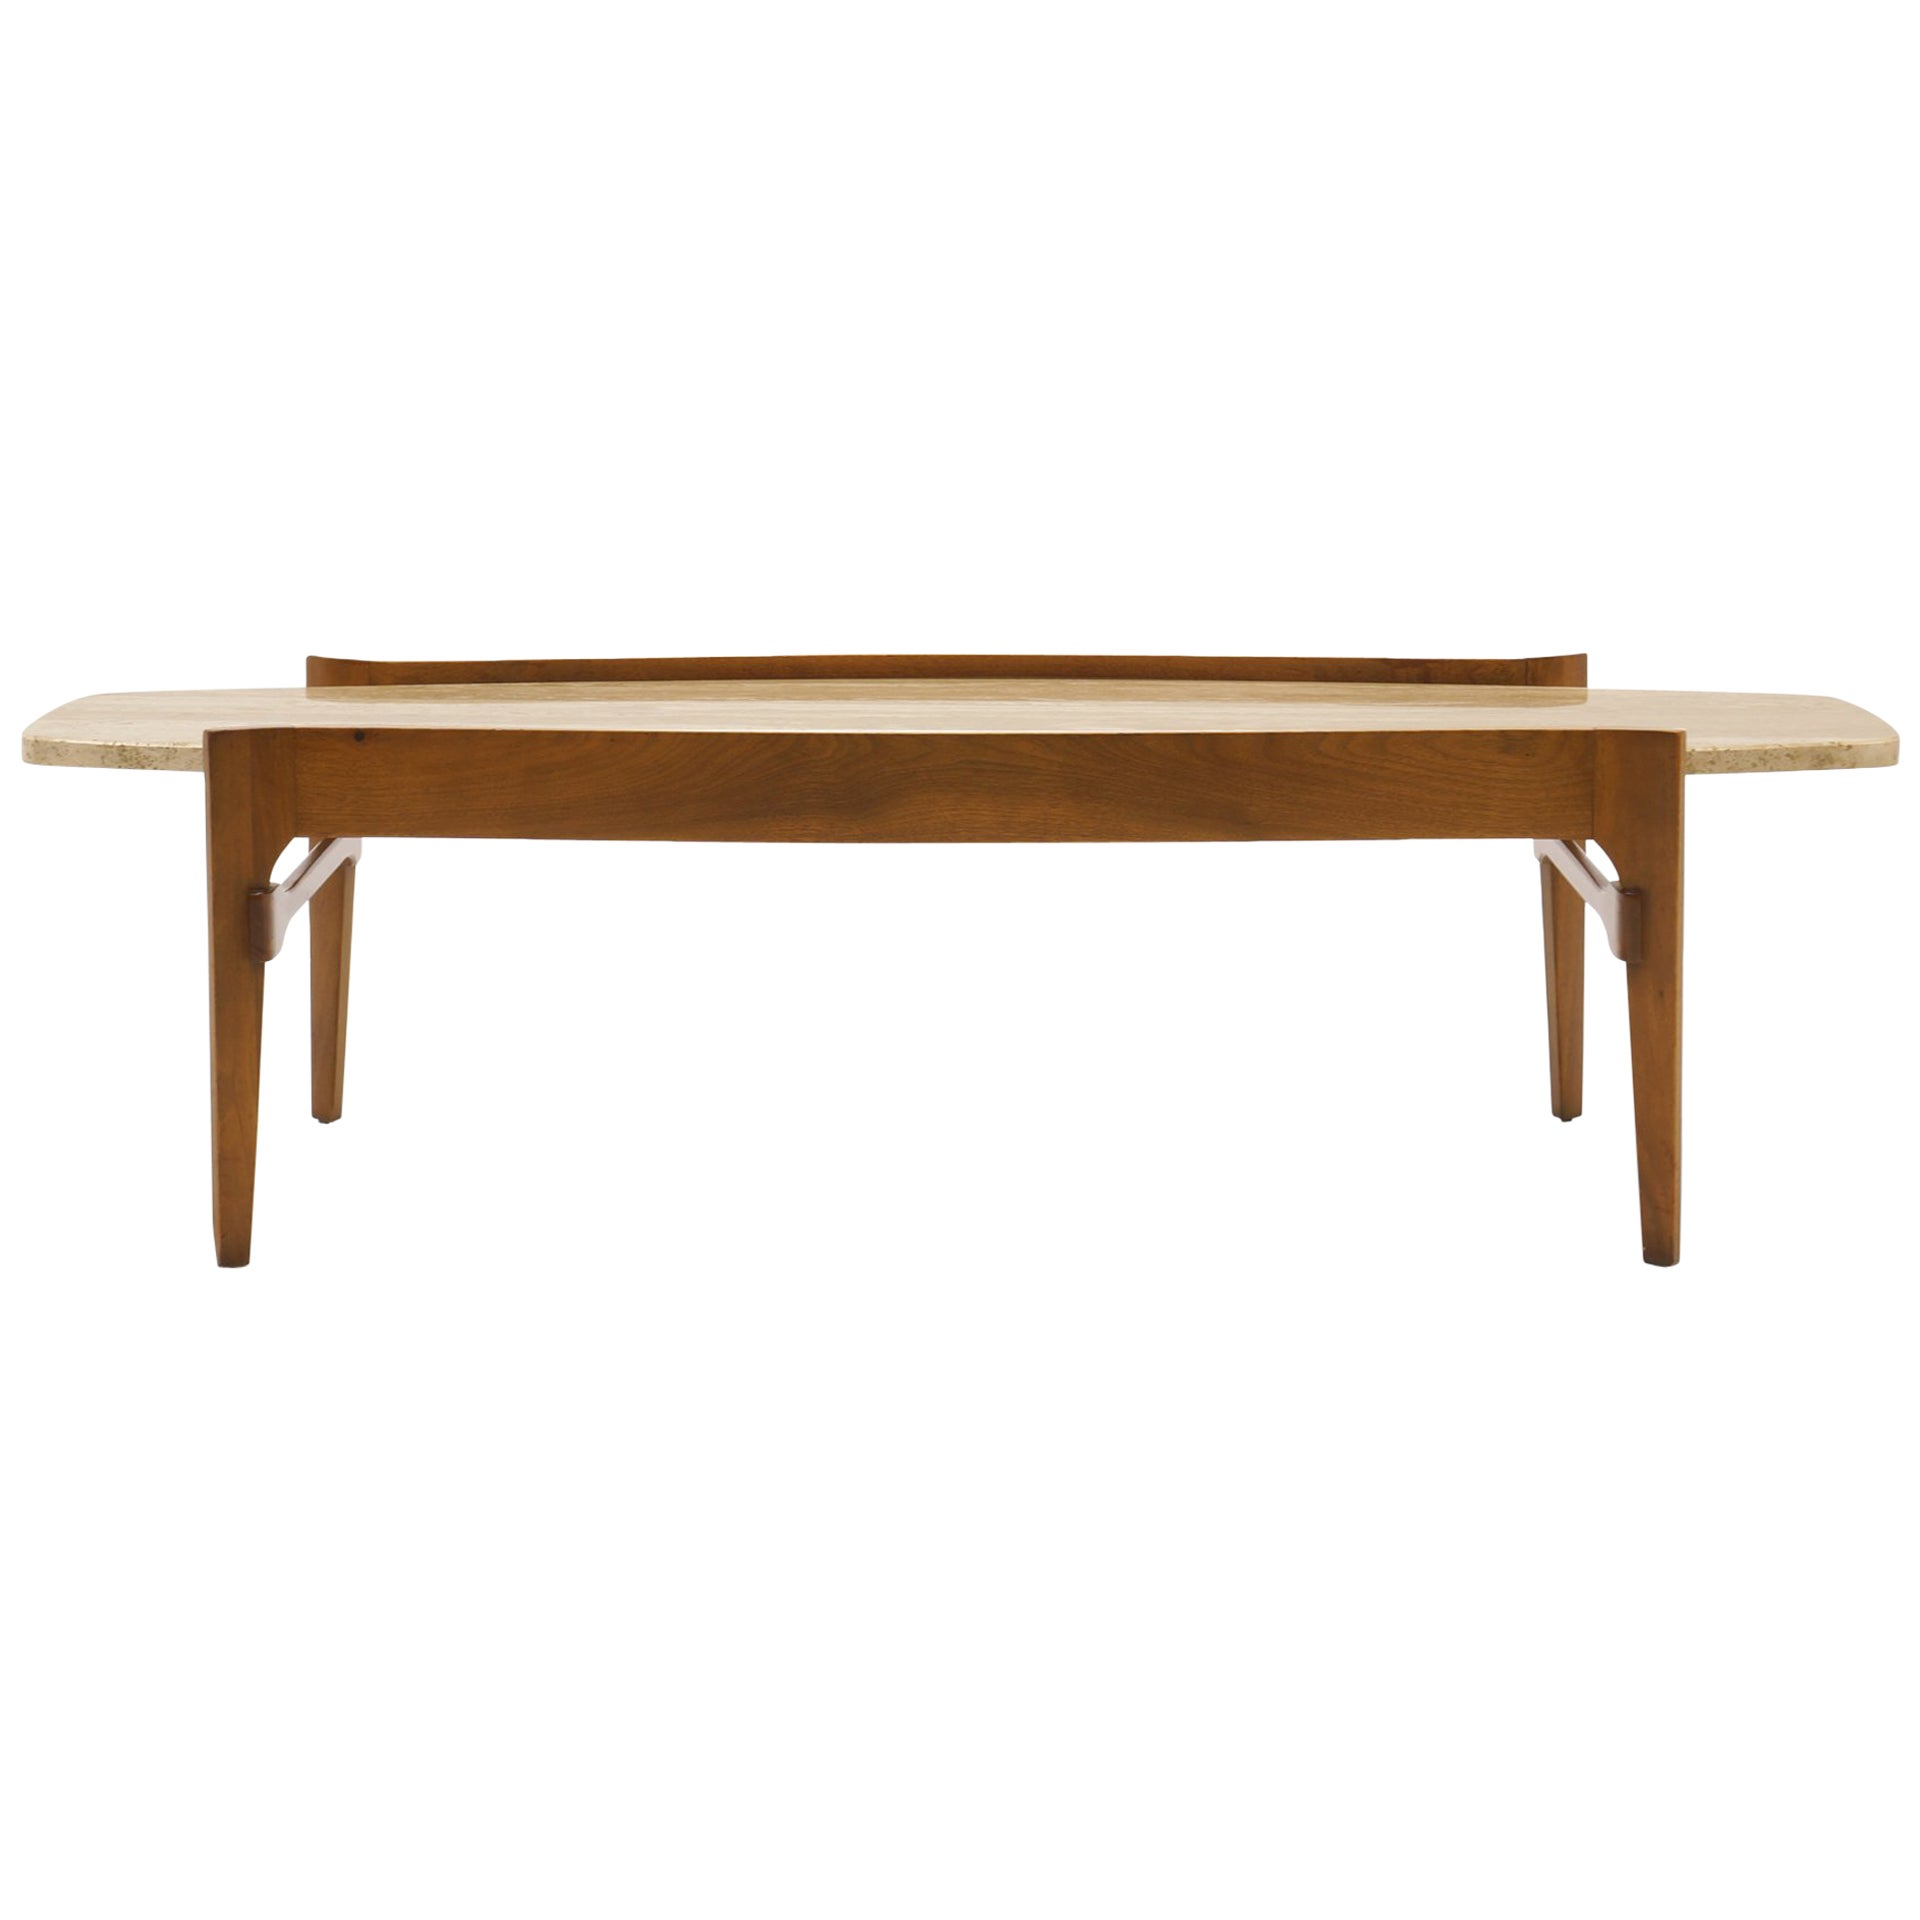 Coffee Table by Bertha Schaefer, Walnut with Travertine Top